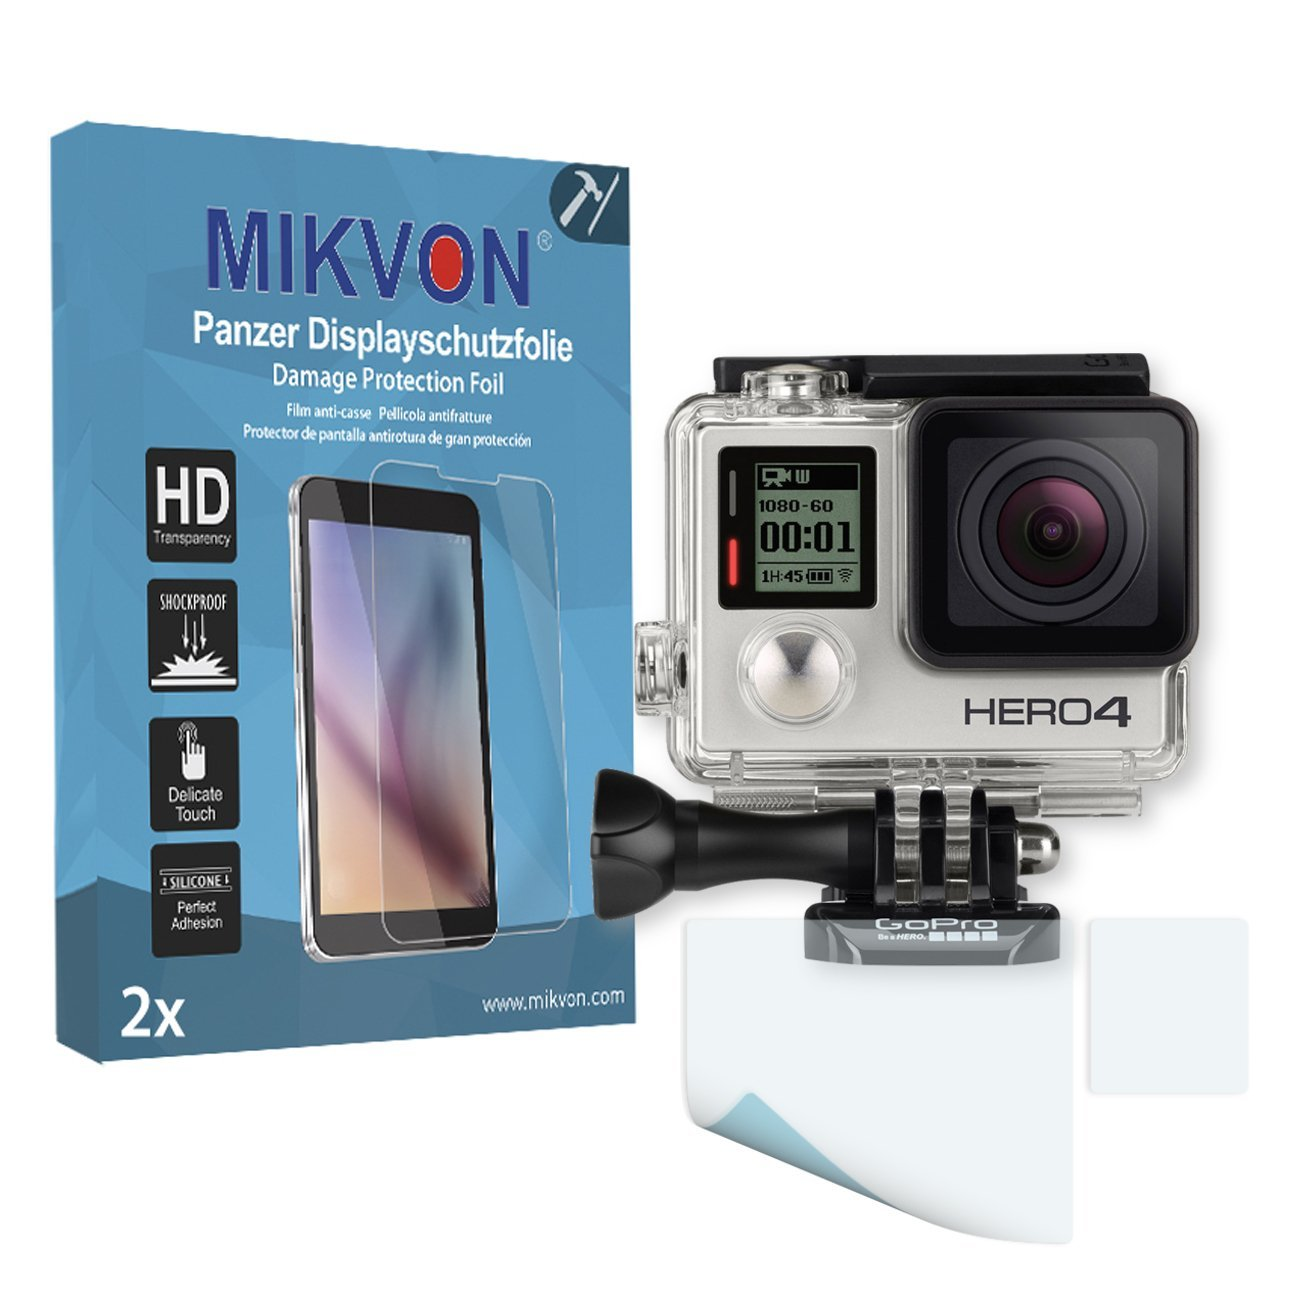 MIKVON 2X Armor Screen Protector for GoPro Hero 4 Screen Fracture Protection Film - Retail Package with Accessories